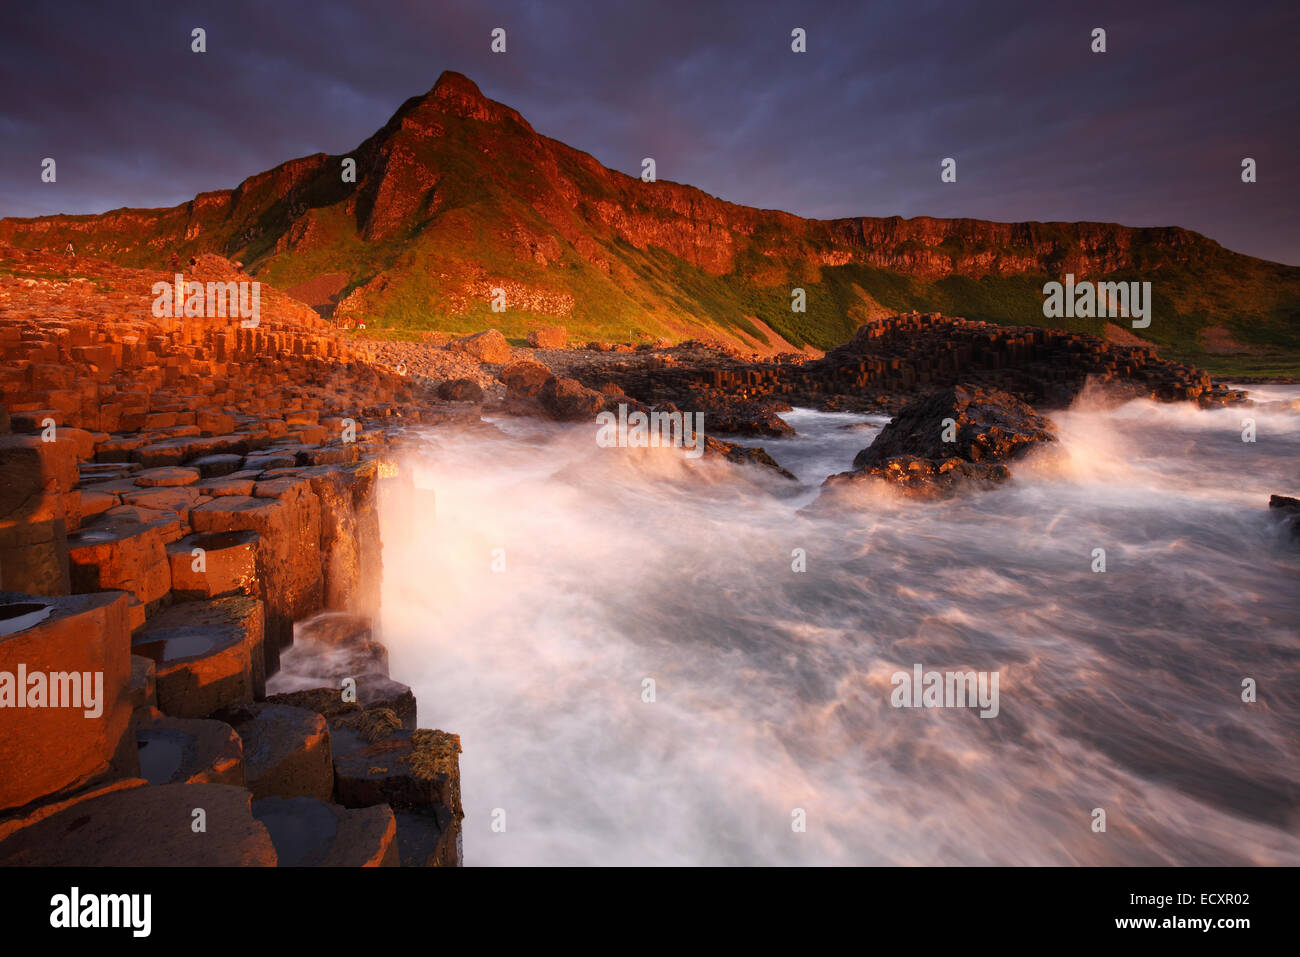 The Giant's Causeway, Northern Ireland - Stock Image